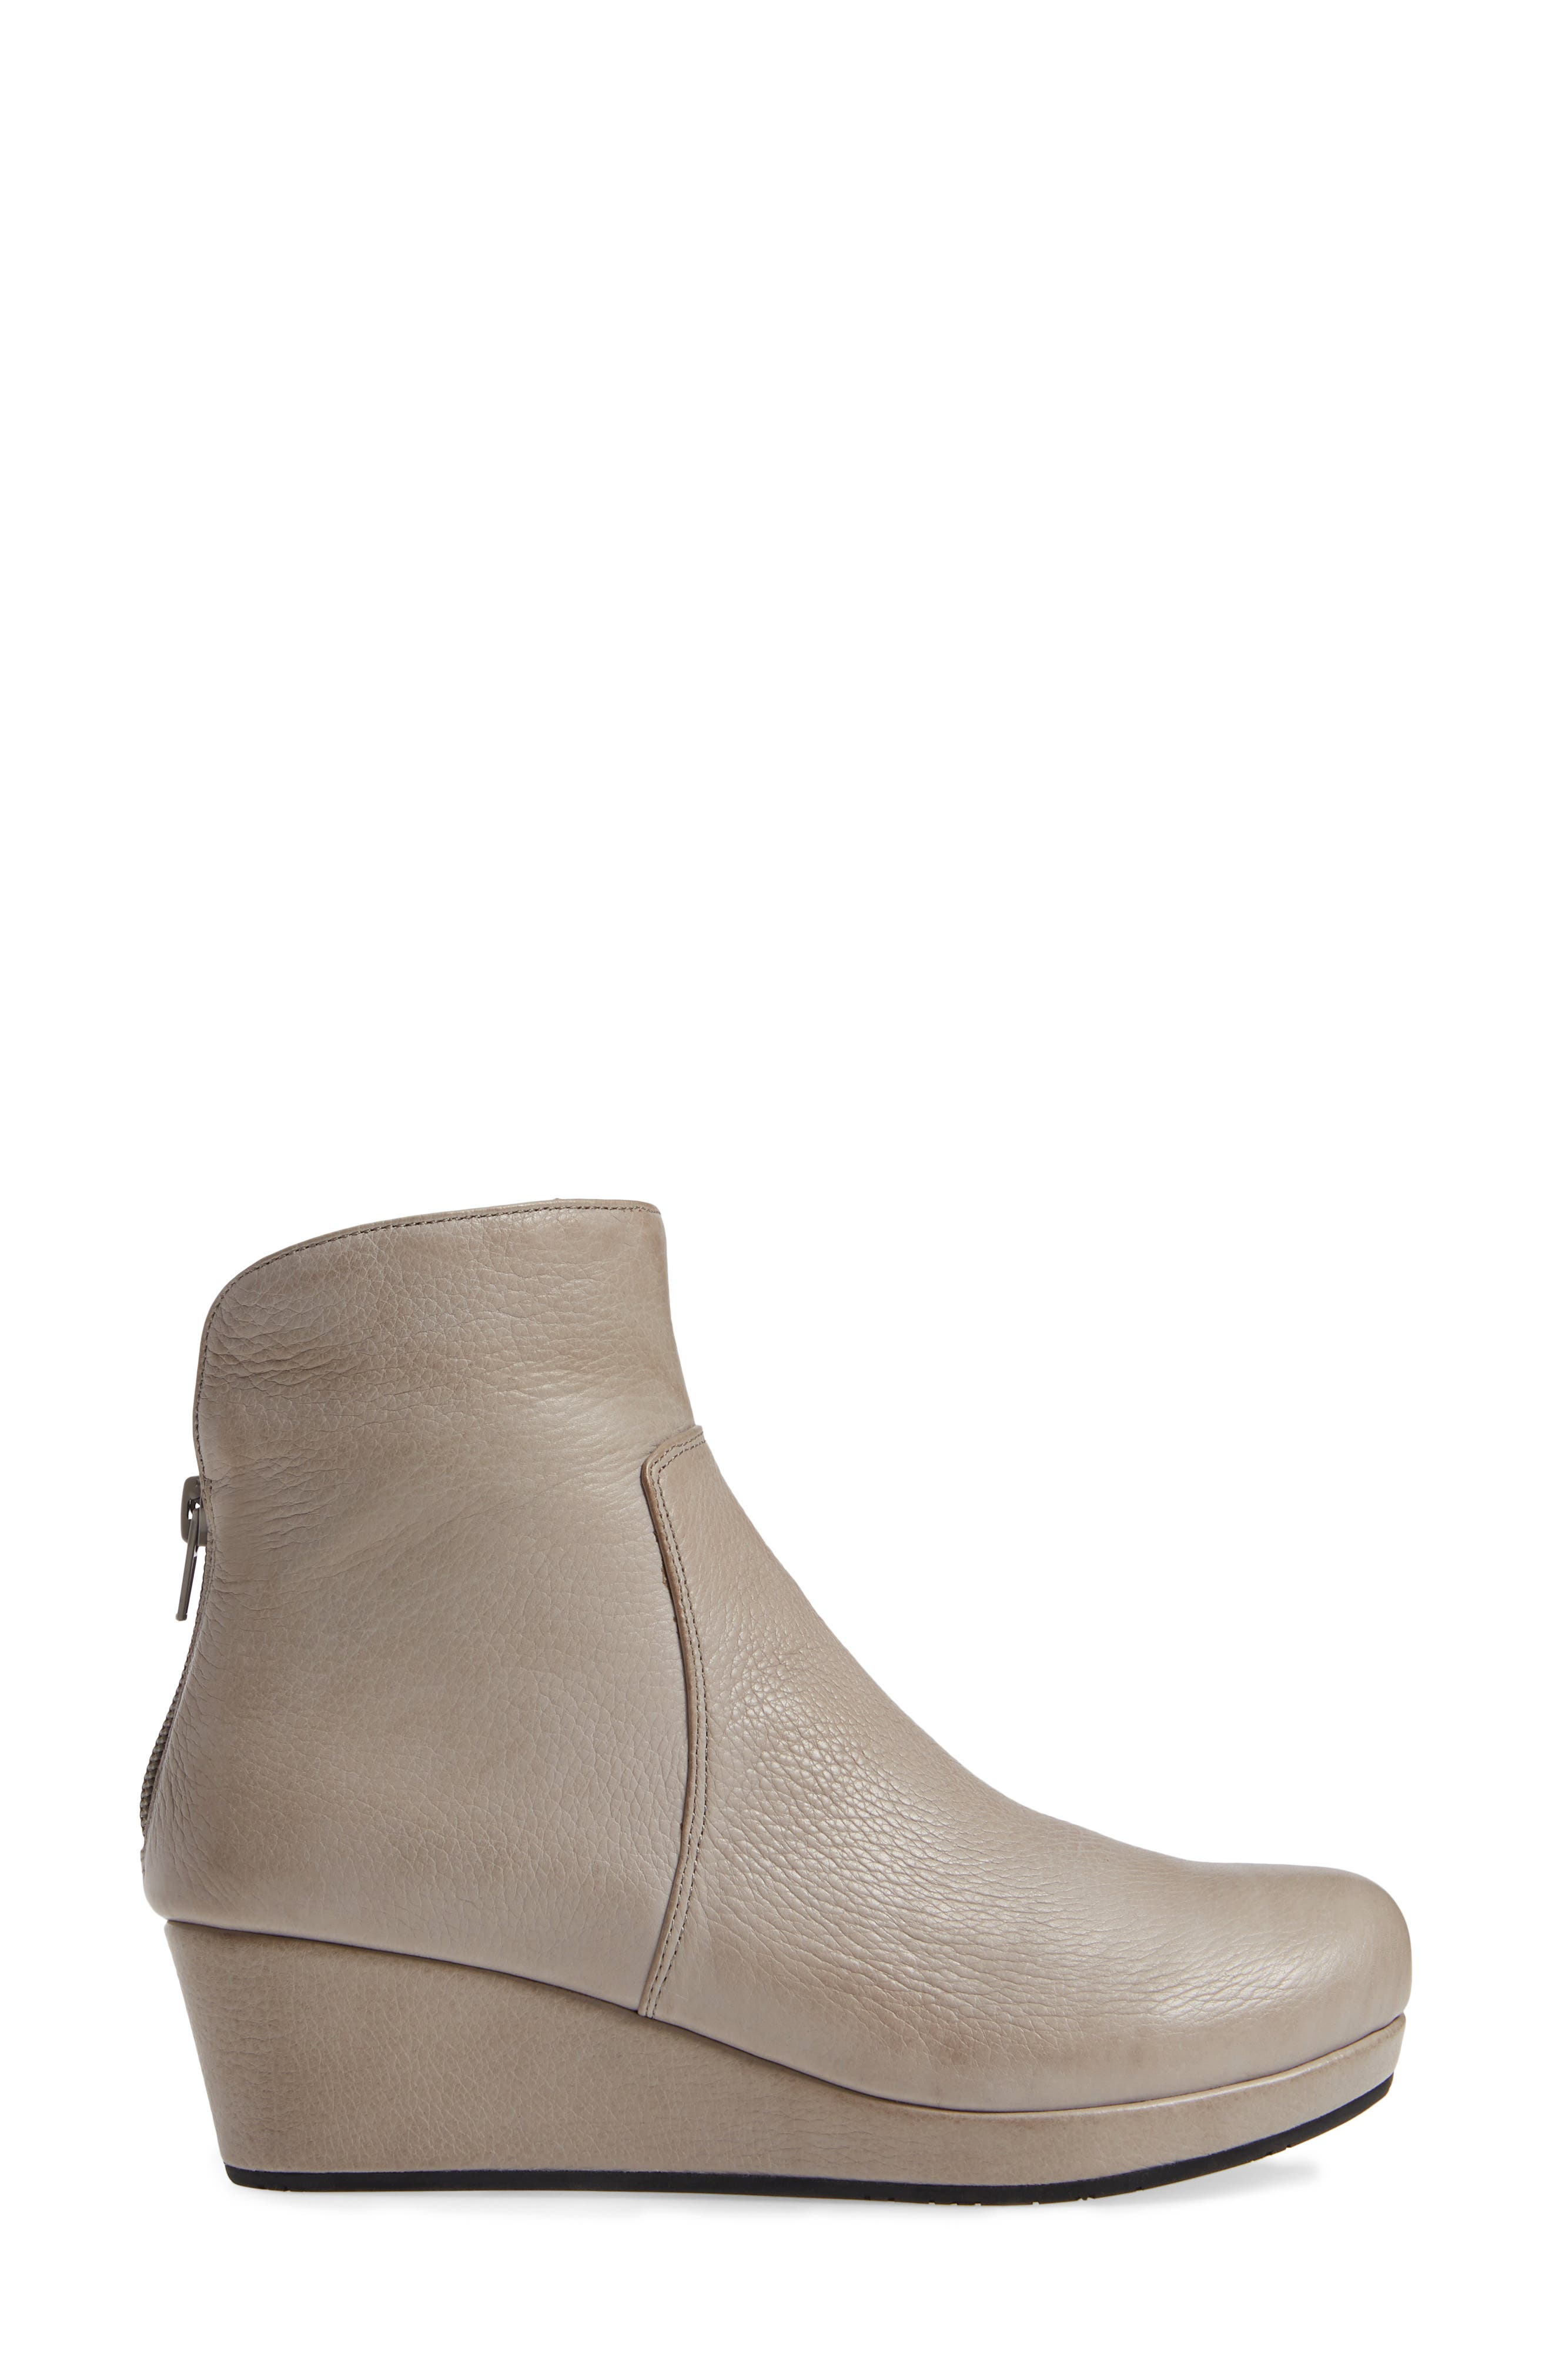 Yarden Wedge Bootie,                             Alternate thumbnail 3, color,                             GREY LEATHER